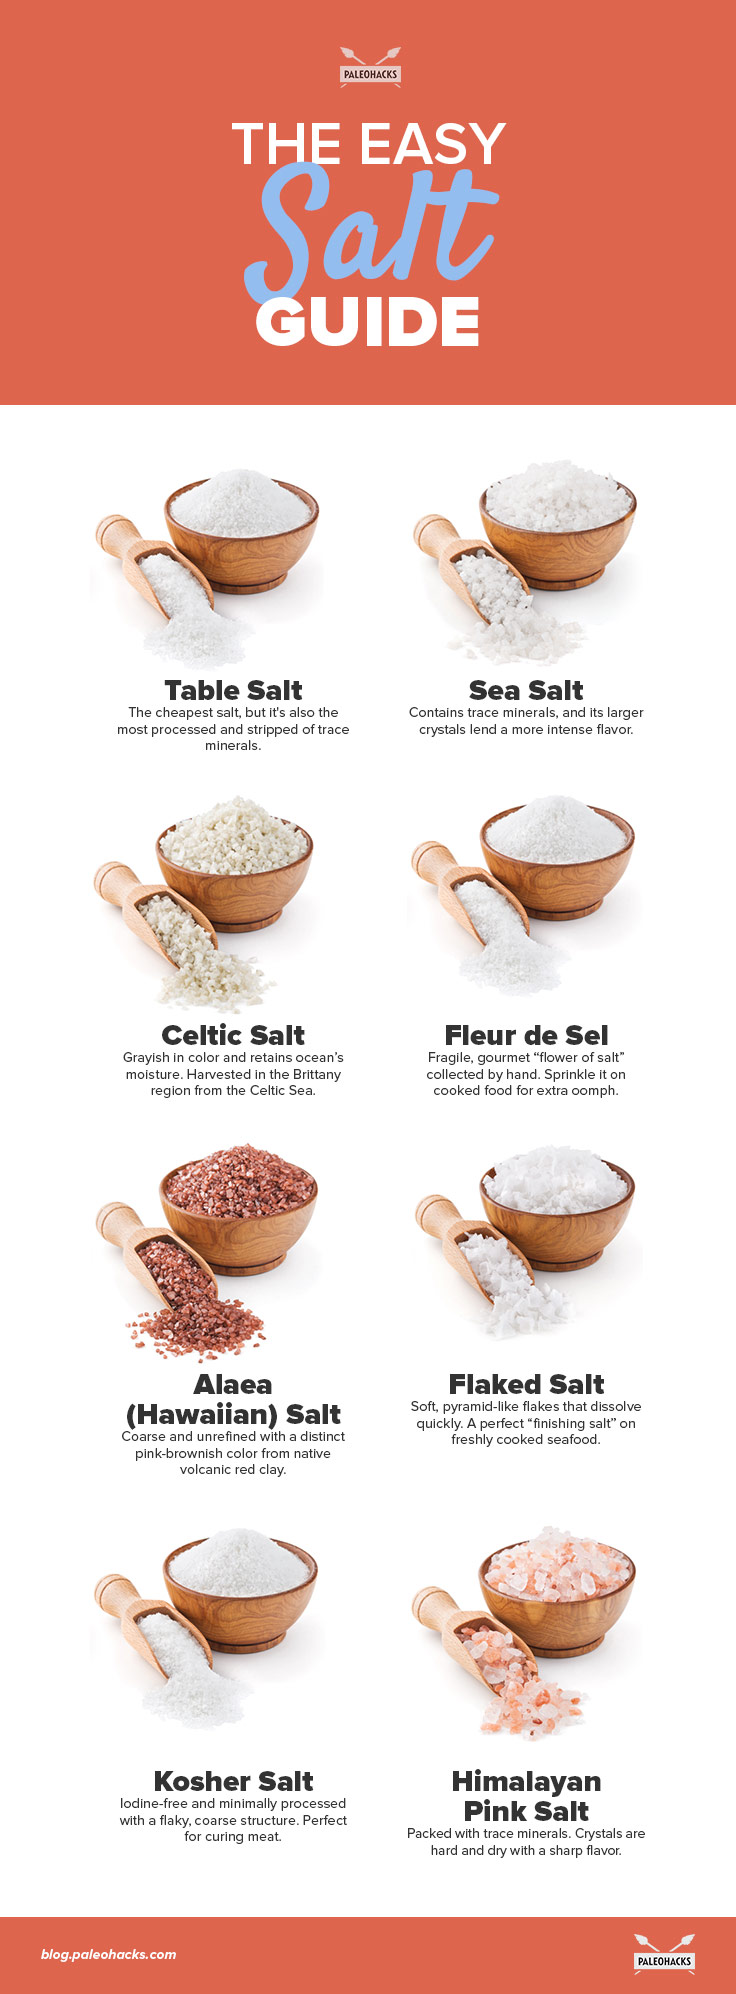 The-Easy-Salt-Guide-infographic (1)